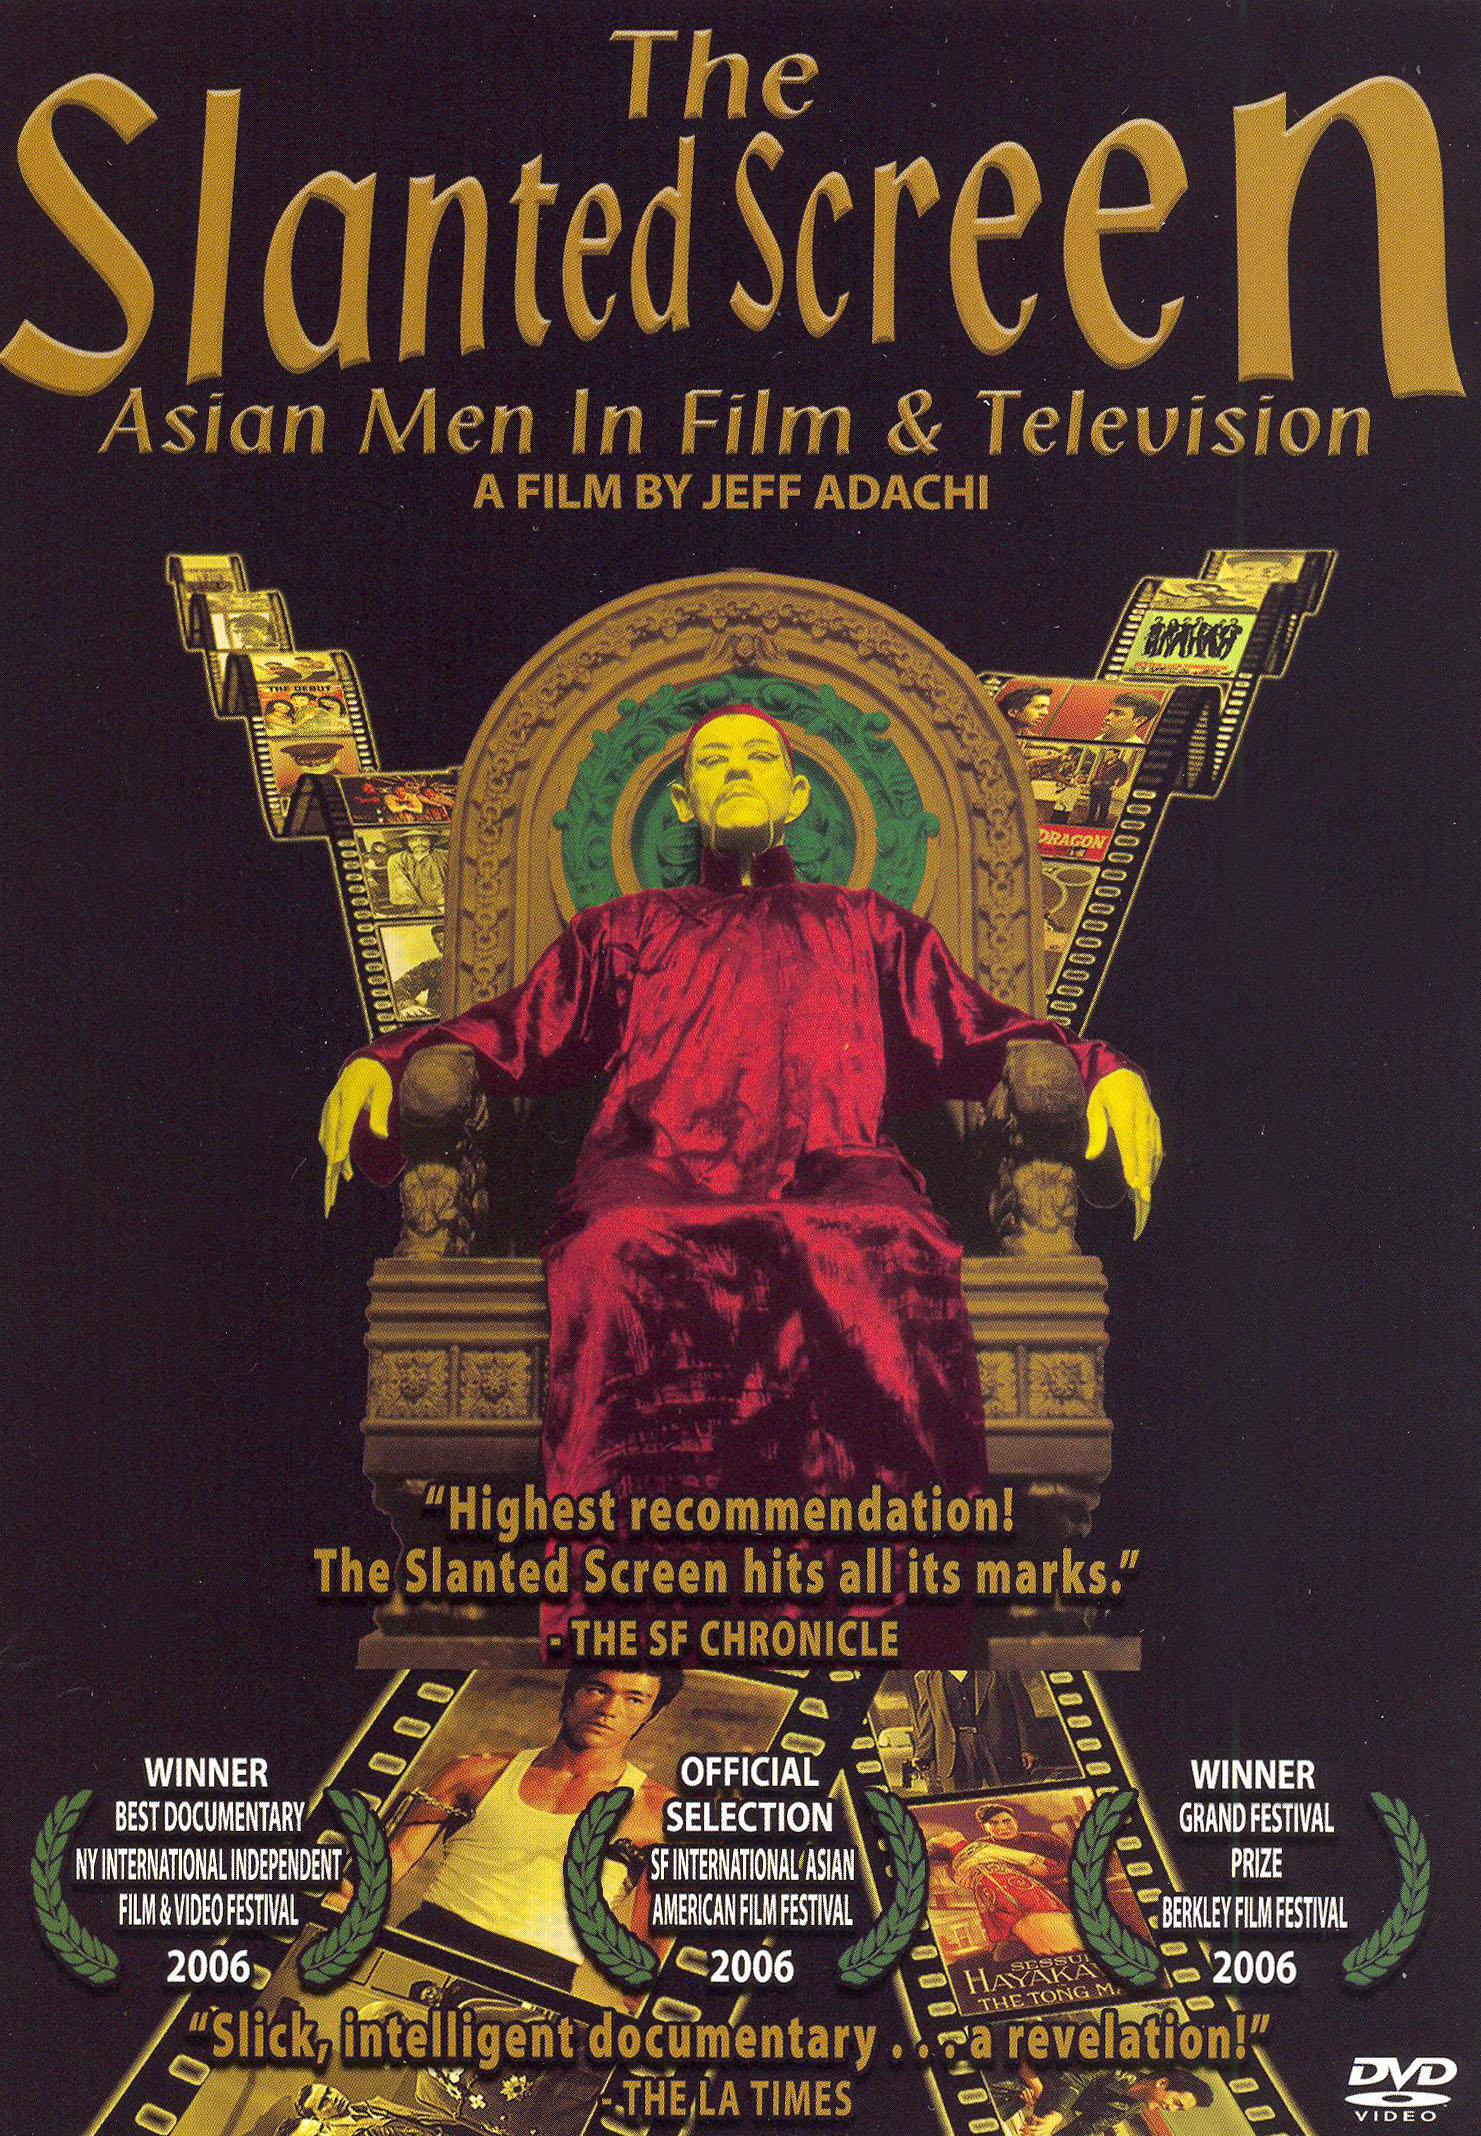 The Slanted Screen: Asian Men in Film & Television